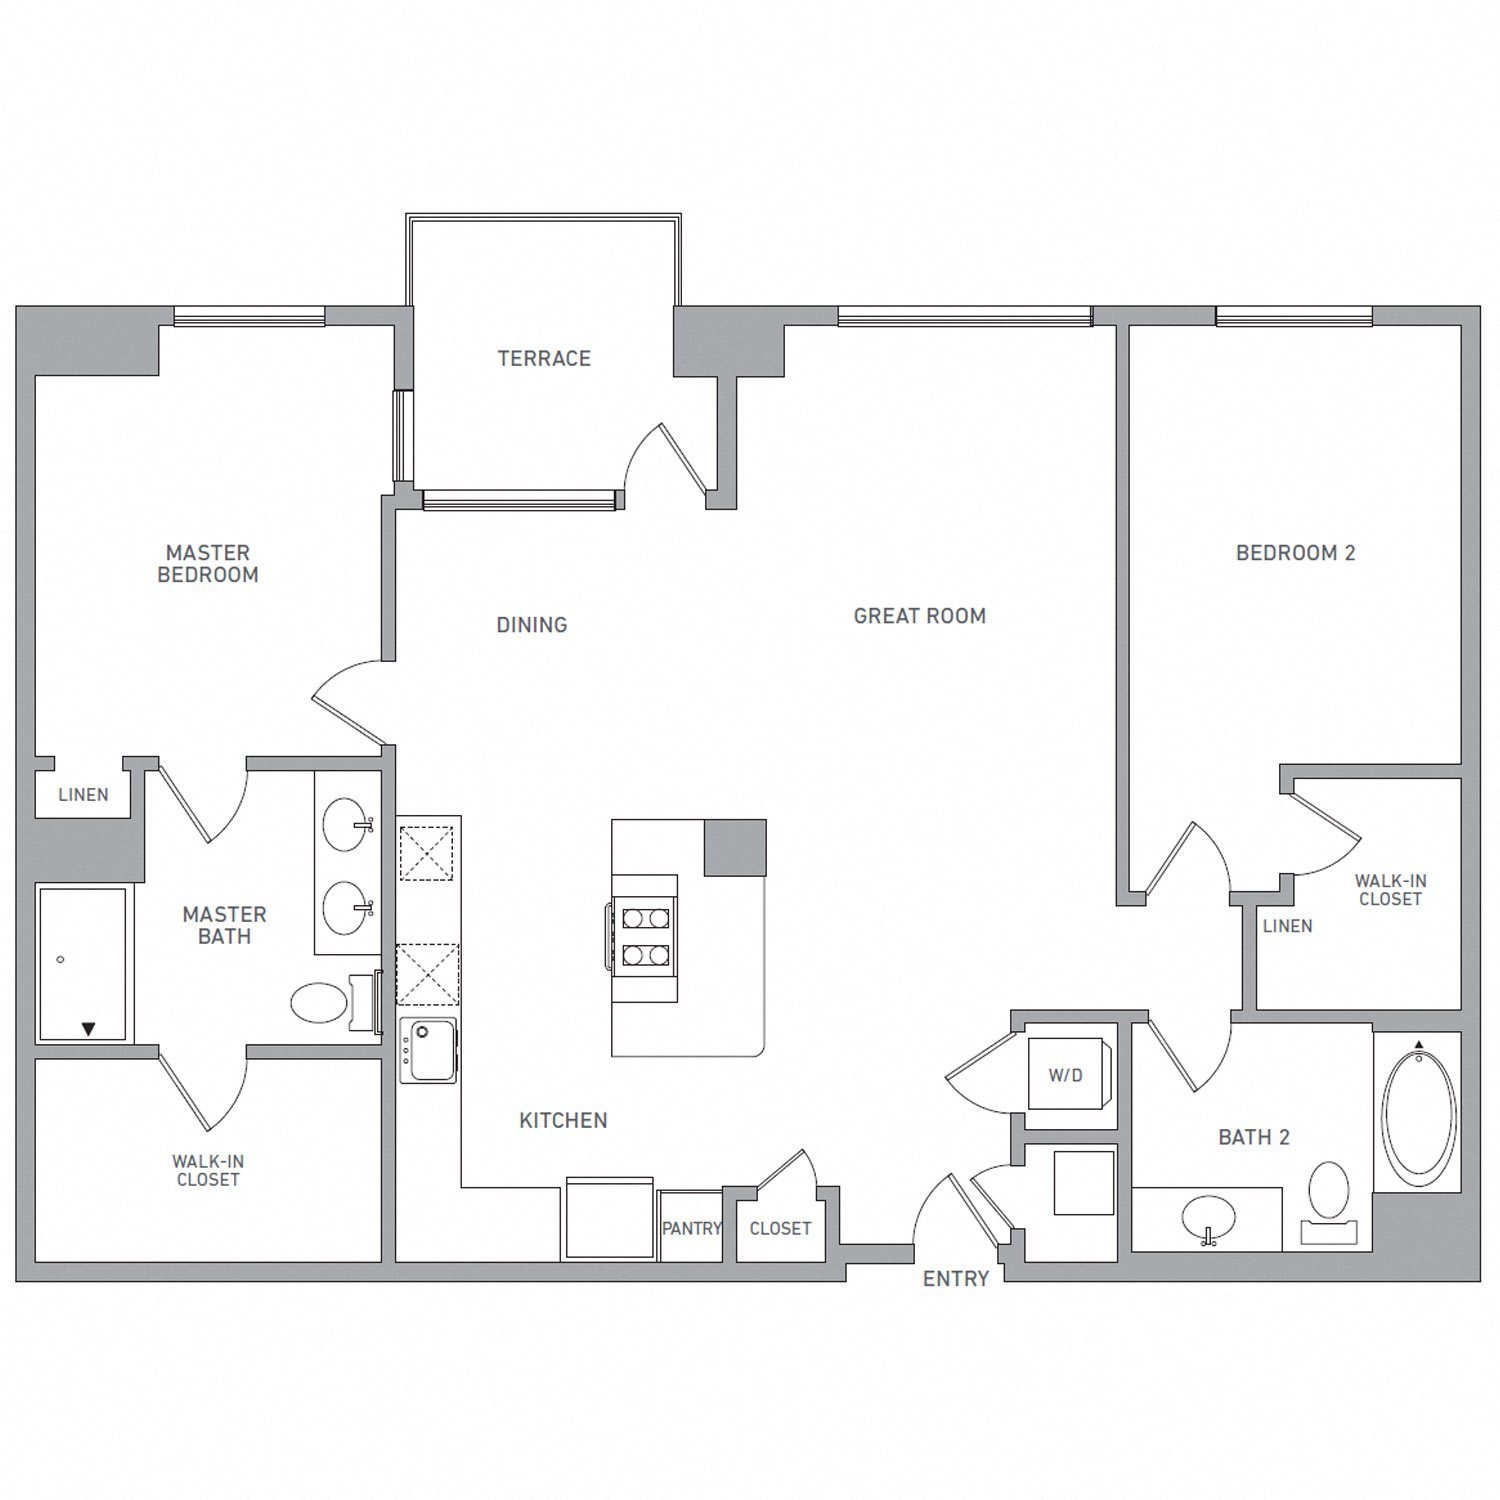 P H 206 floor plan diagram. Penthouse apartment with two bedrooms, two bathrooms, an open kitchen dining and living area, a terrace, and a washer dryer.